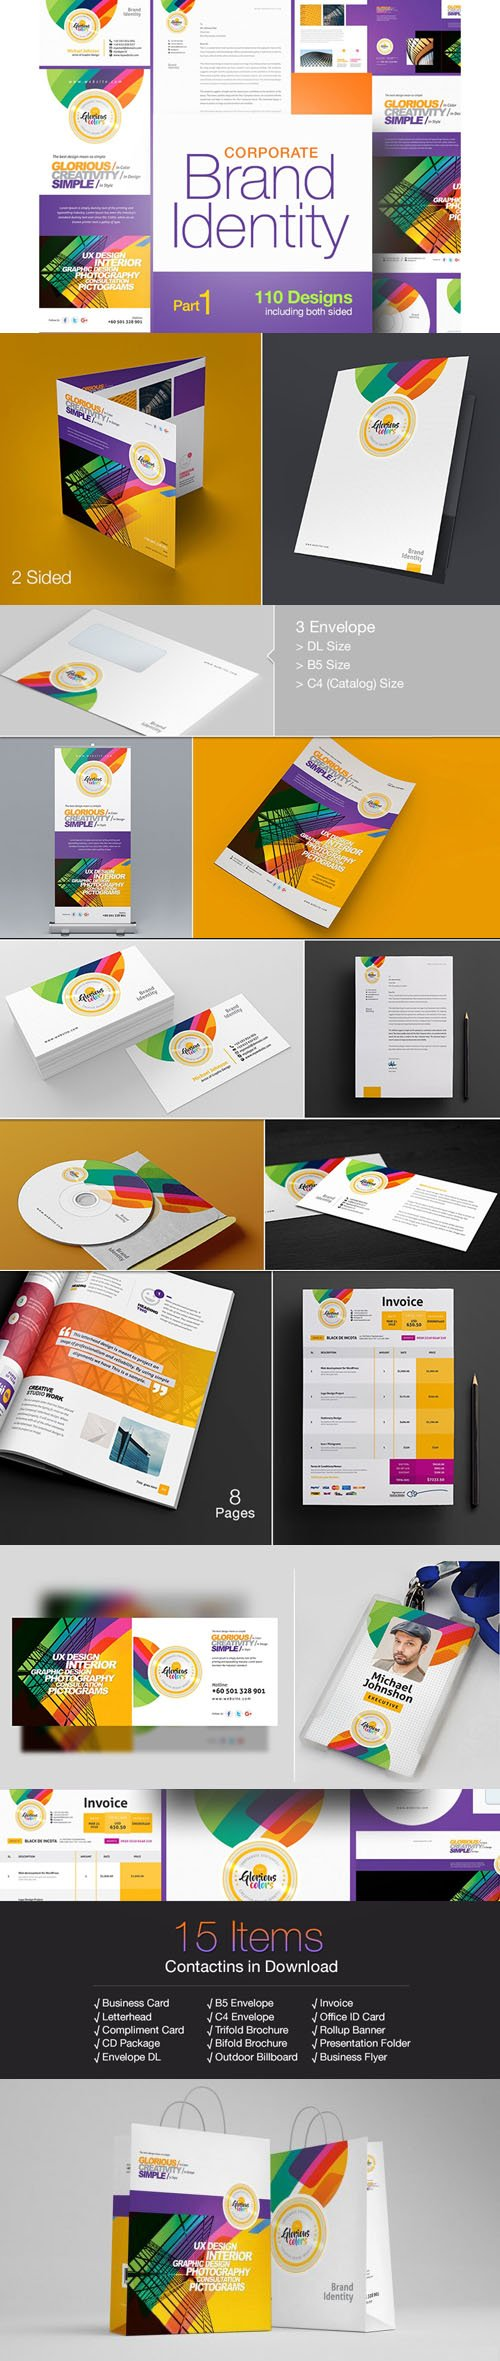 Corporate Brand Identity - Part 1 - 110 Designs